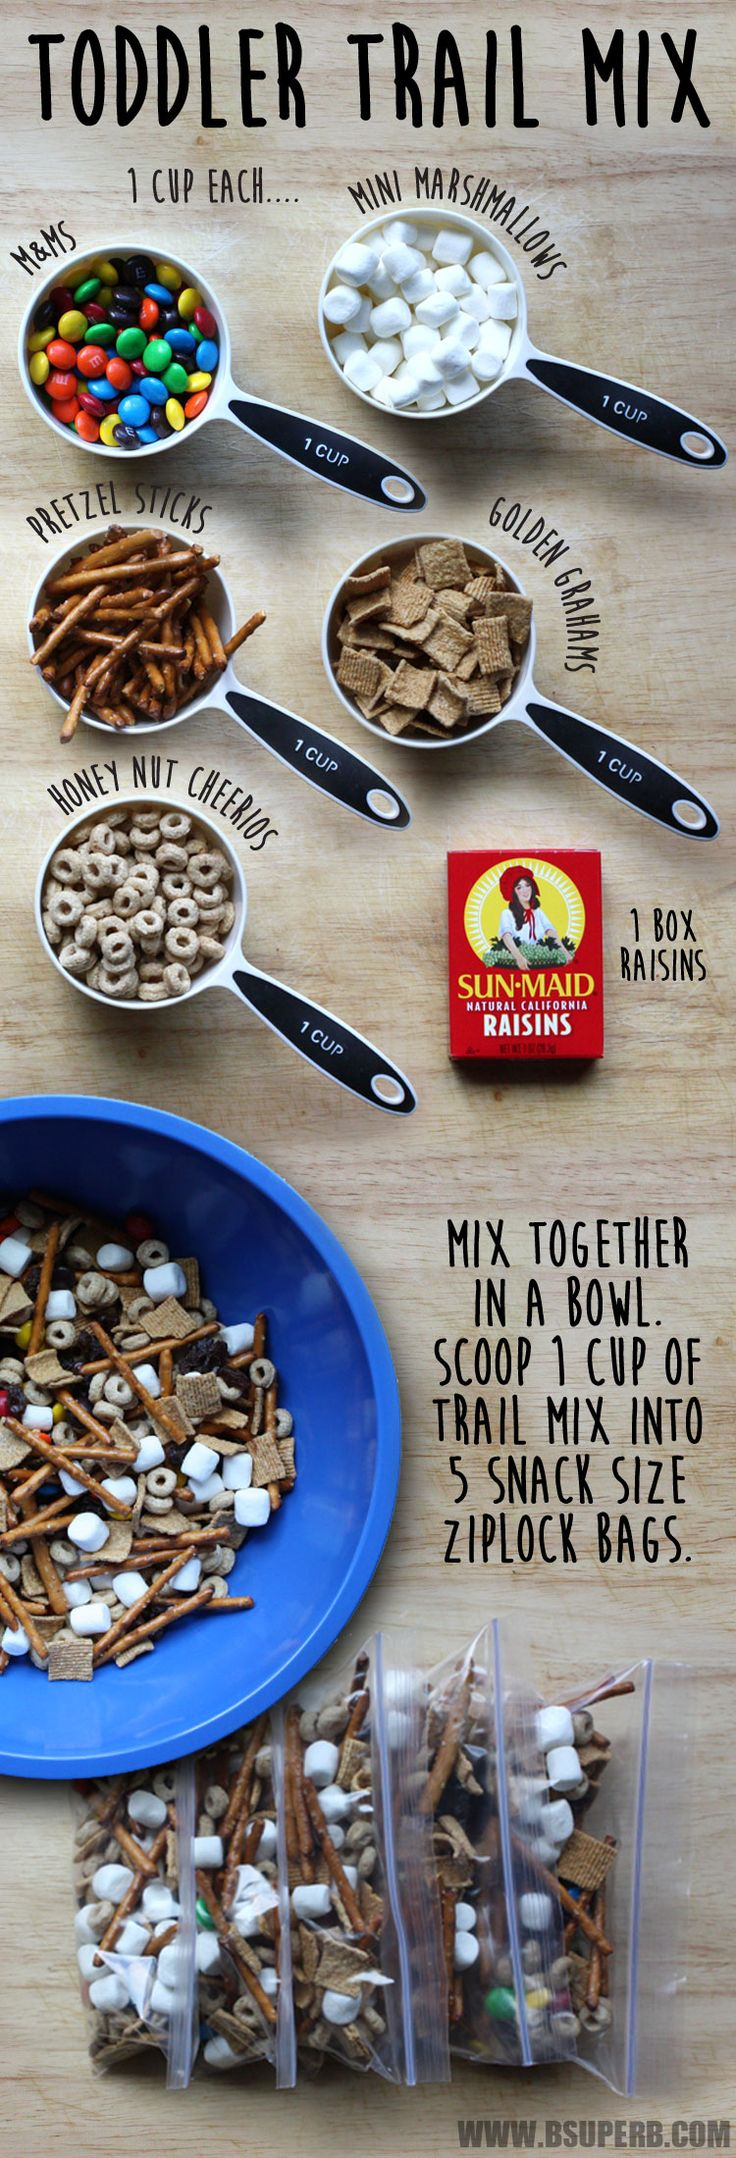 Toddler Trail Mix - marshmallows, pretzels, golden grahms, cherrios, raisins - NO m&ms